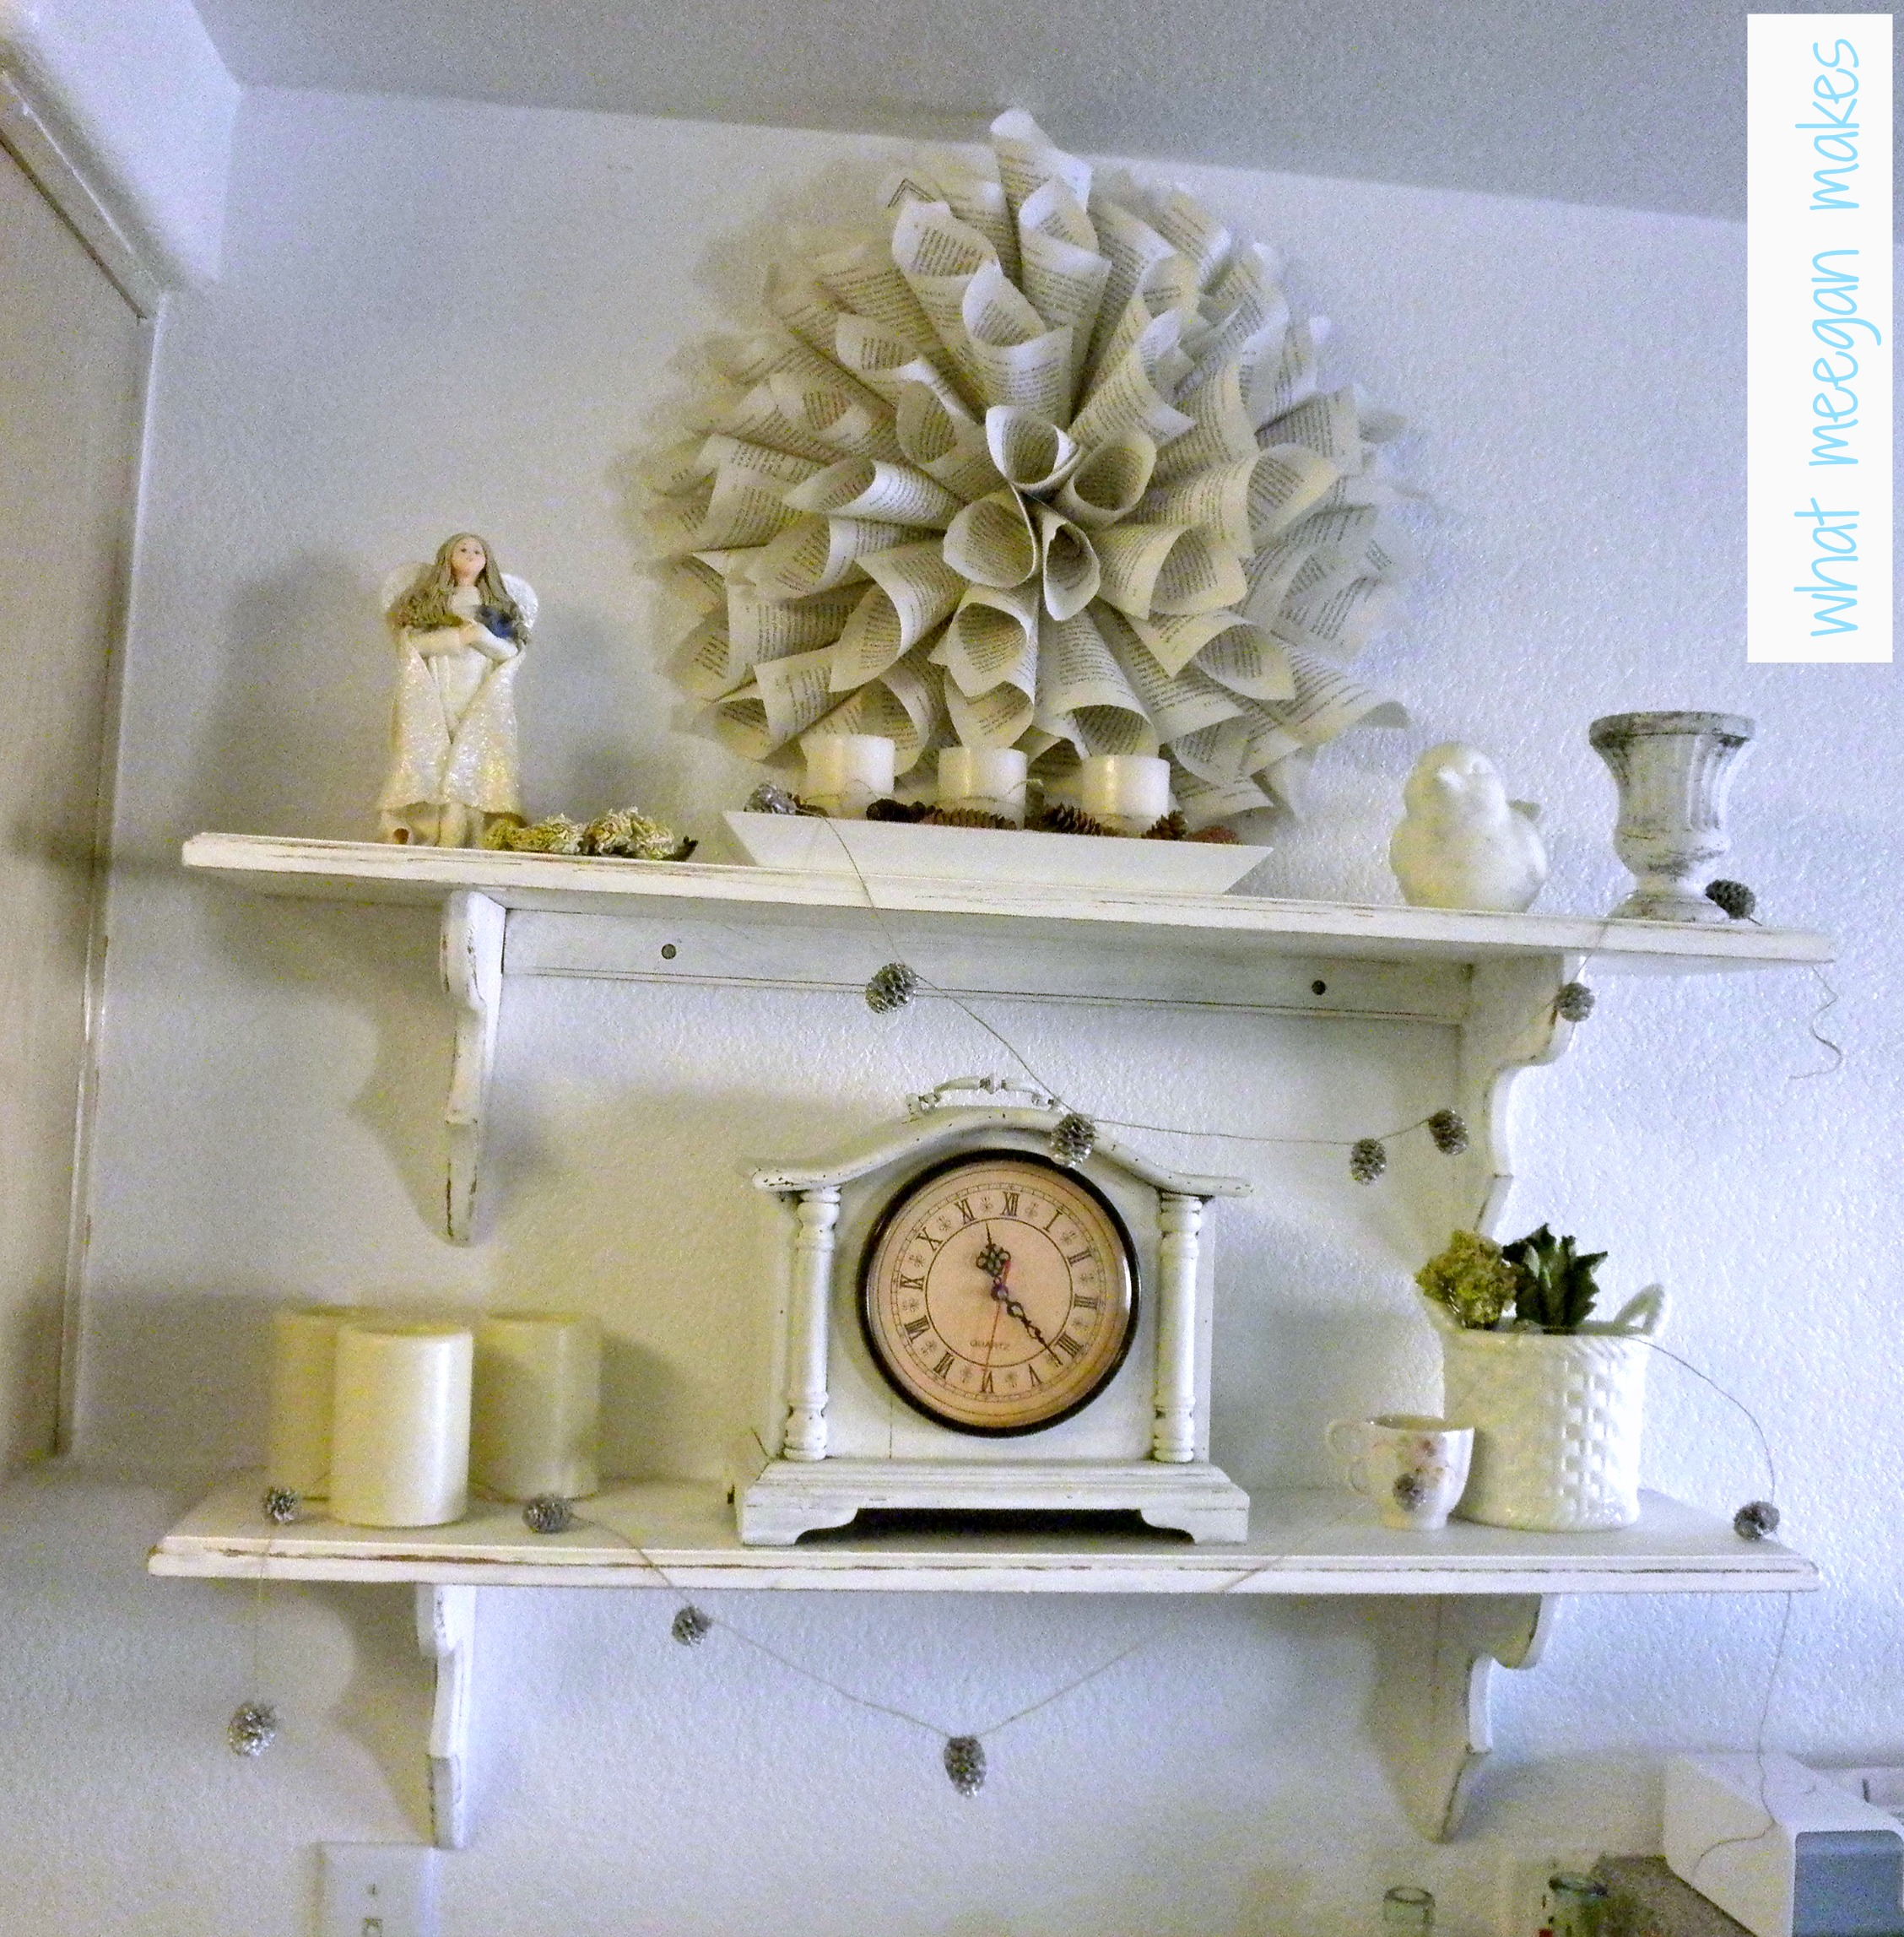 My Winter White Shelves